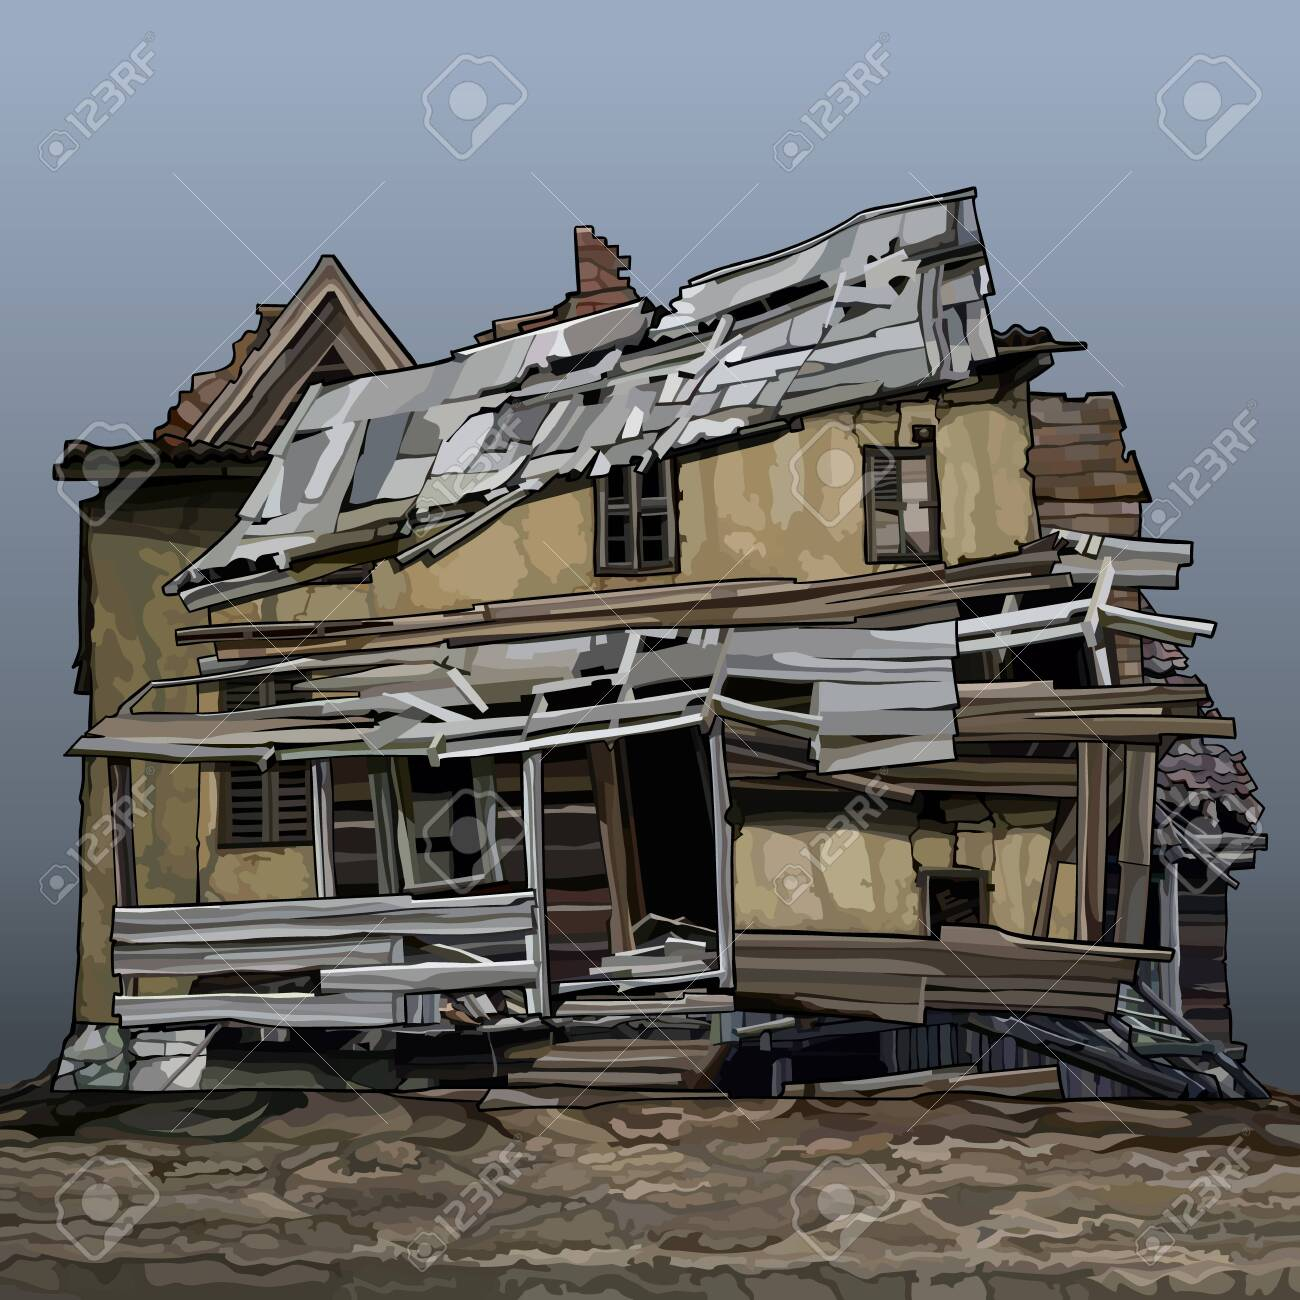 Cartoon old sprawled two story house stands on the ground. Vector image - 151015892